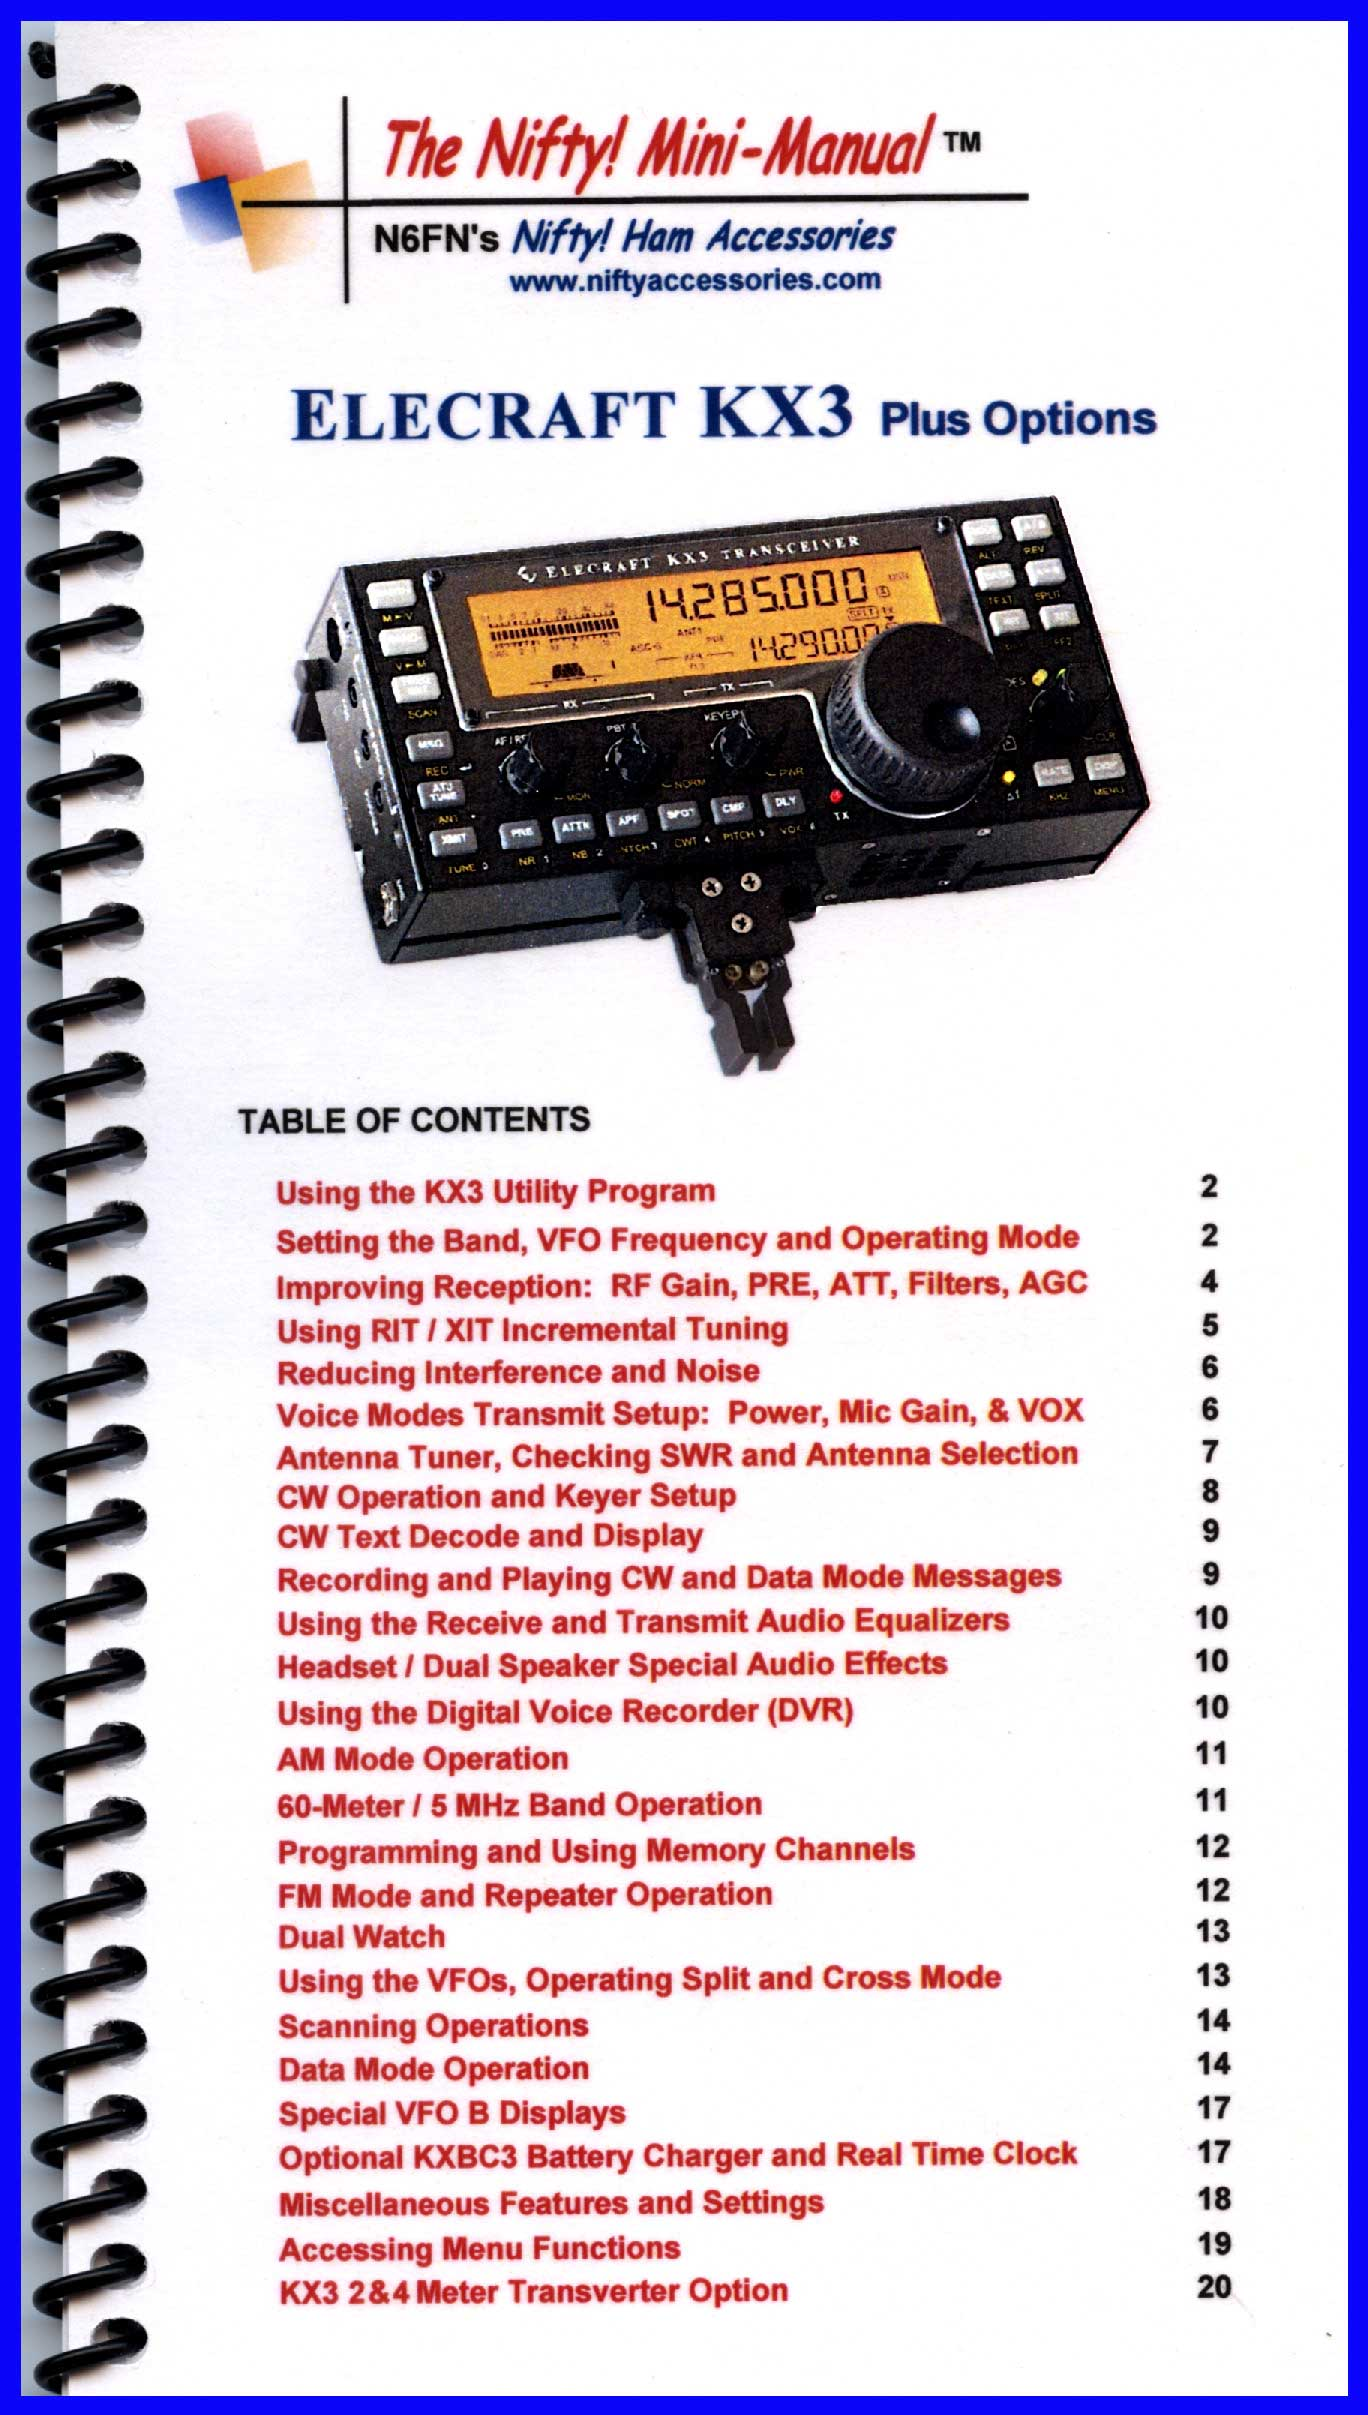 Elecraft KX3 Mini-Manual